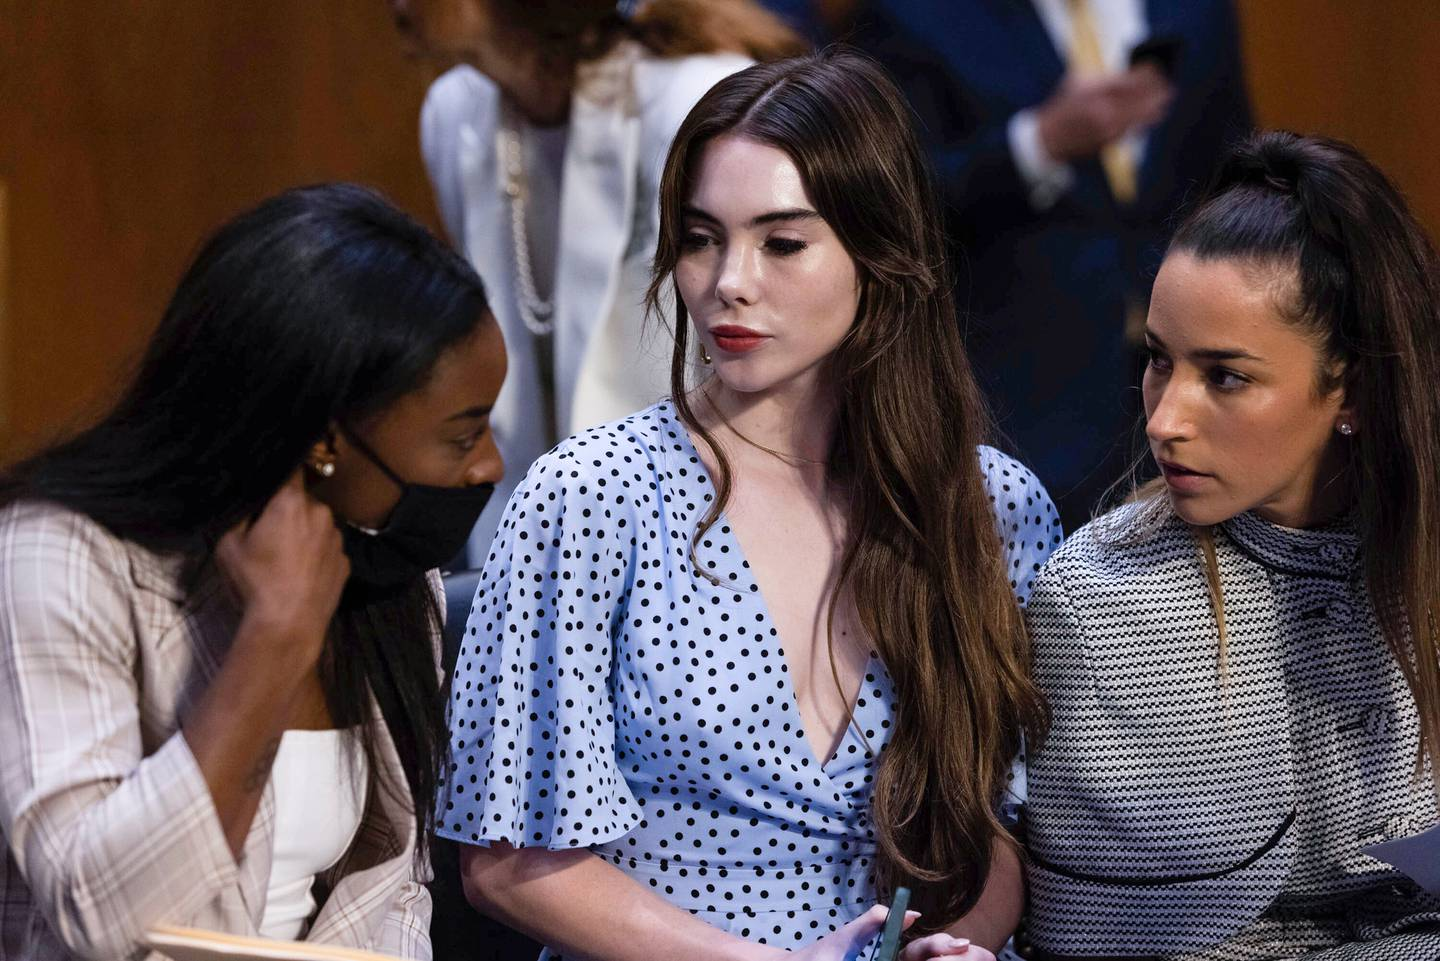 Simone Biles, McKayla Maroney, and Aly Raisman arrive for a Senate Judiciary hearing about the Inspector General's report on the FBI's handling of the Larry Nassar investigation.